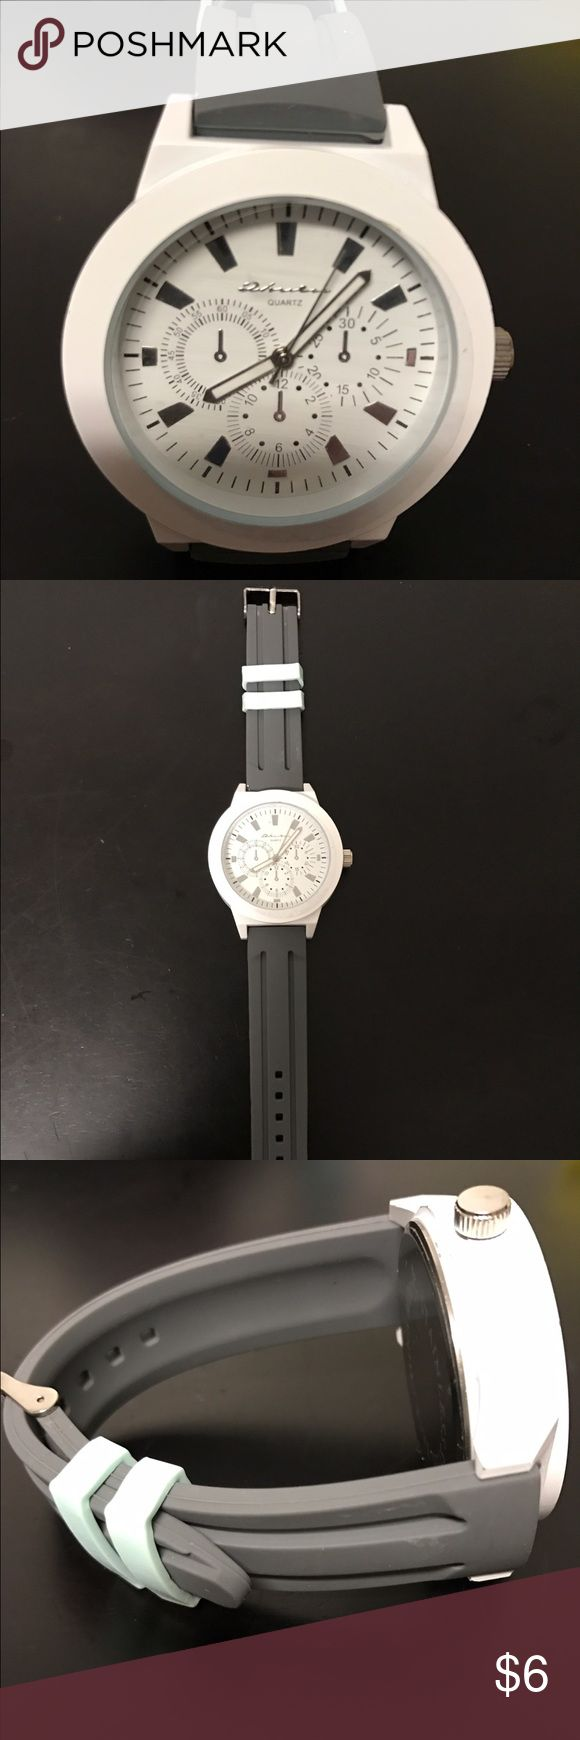 Fashion watch. Grey/while & aqua blue Supper cute large face watch. White face w/ grey & aqua blue band. Check out my closet and save! Accessories Watches